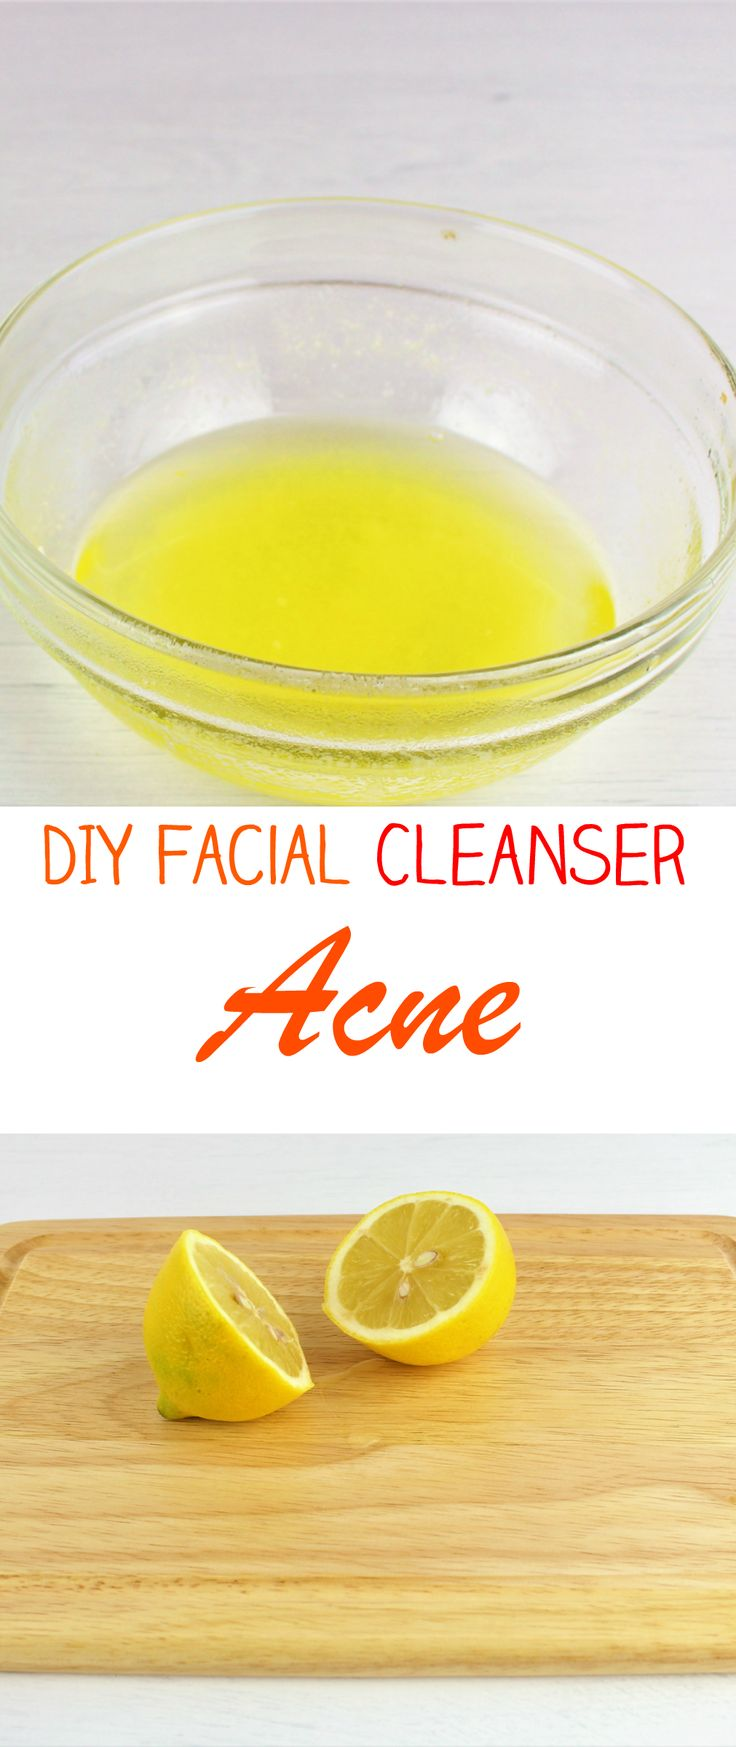 DIY Facial Cleanser to Get Rid of Acne at Home! (face cleanser, best face cleanser, homemade face cleanser, gentle face cleanser, natural face cleansers, organic face cleanser, best face cleansers, DIY face cleanser, face cleanser for oily skin, face clea